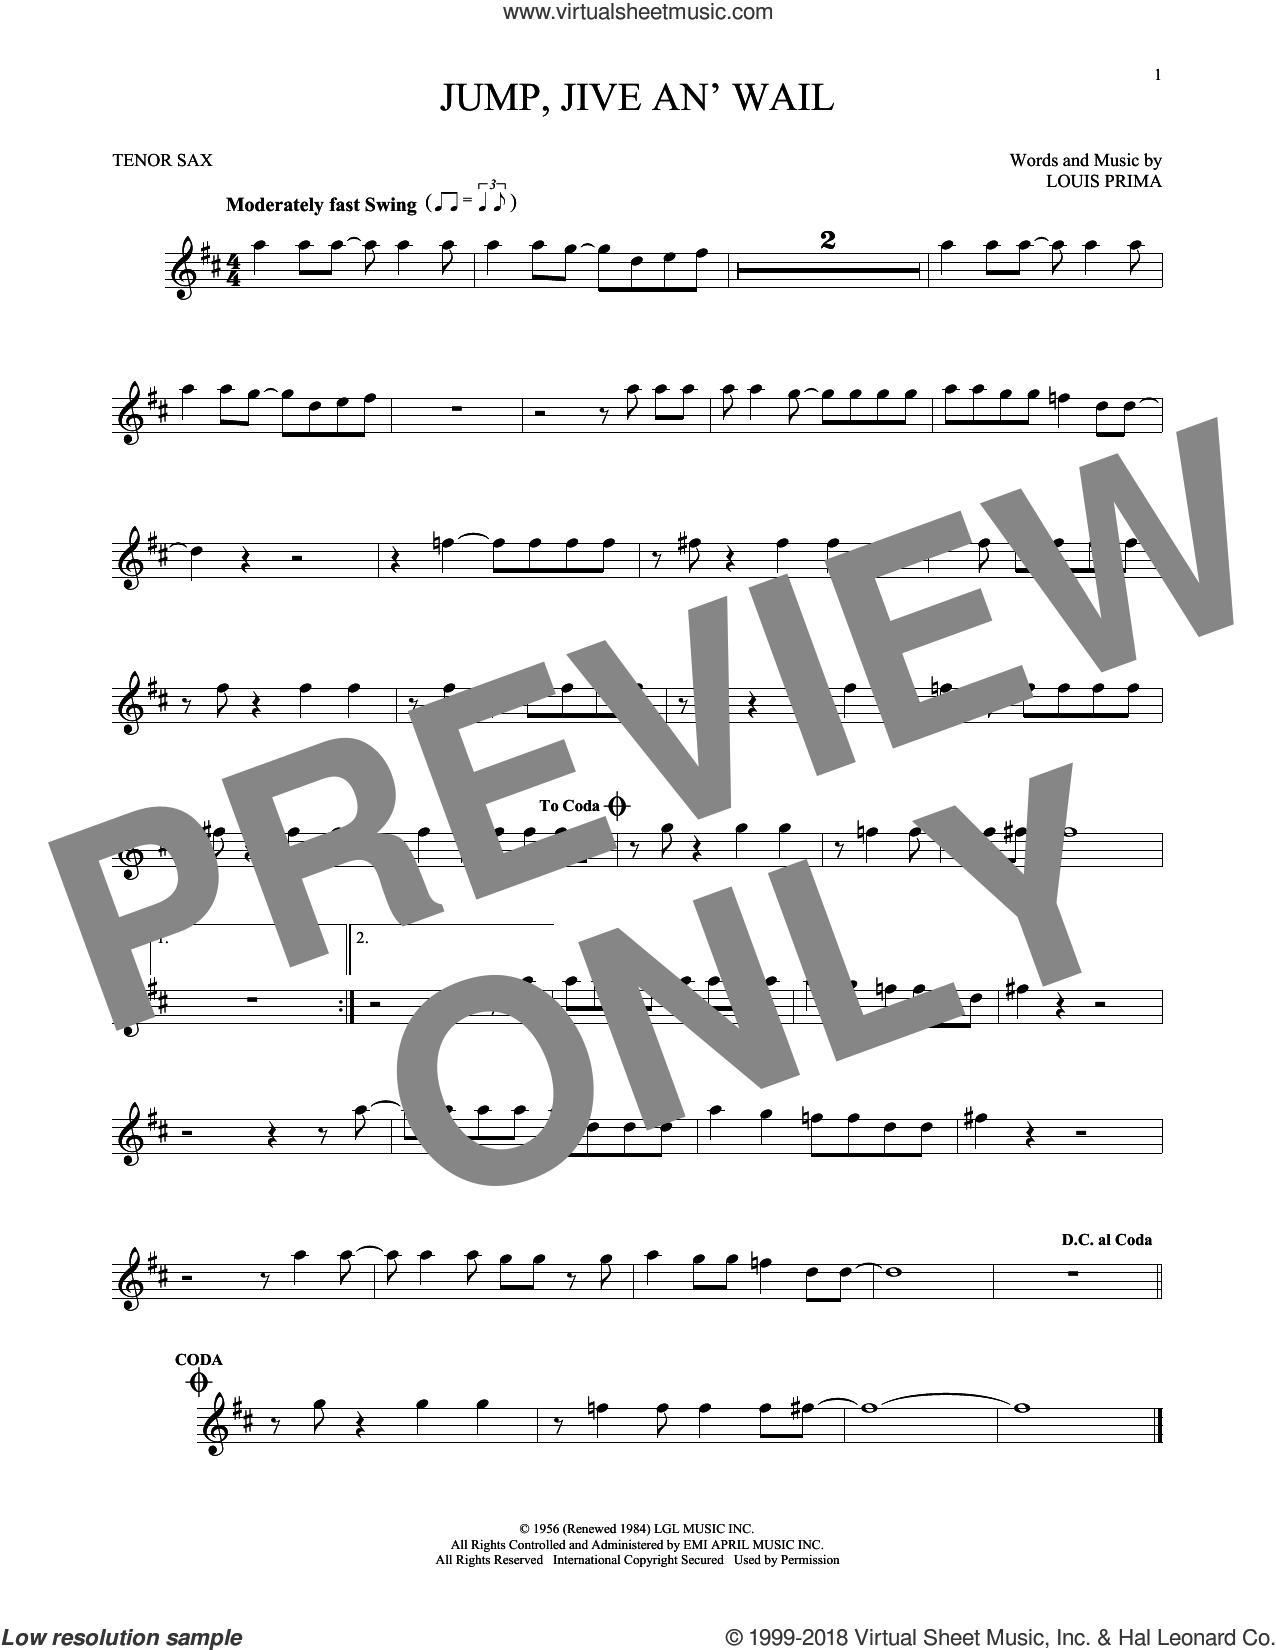 Jump, Jive An' Wail sheet music for tenor saxophone solo by Louis Prima and Brian Setzer, intermediate skill level